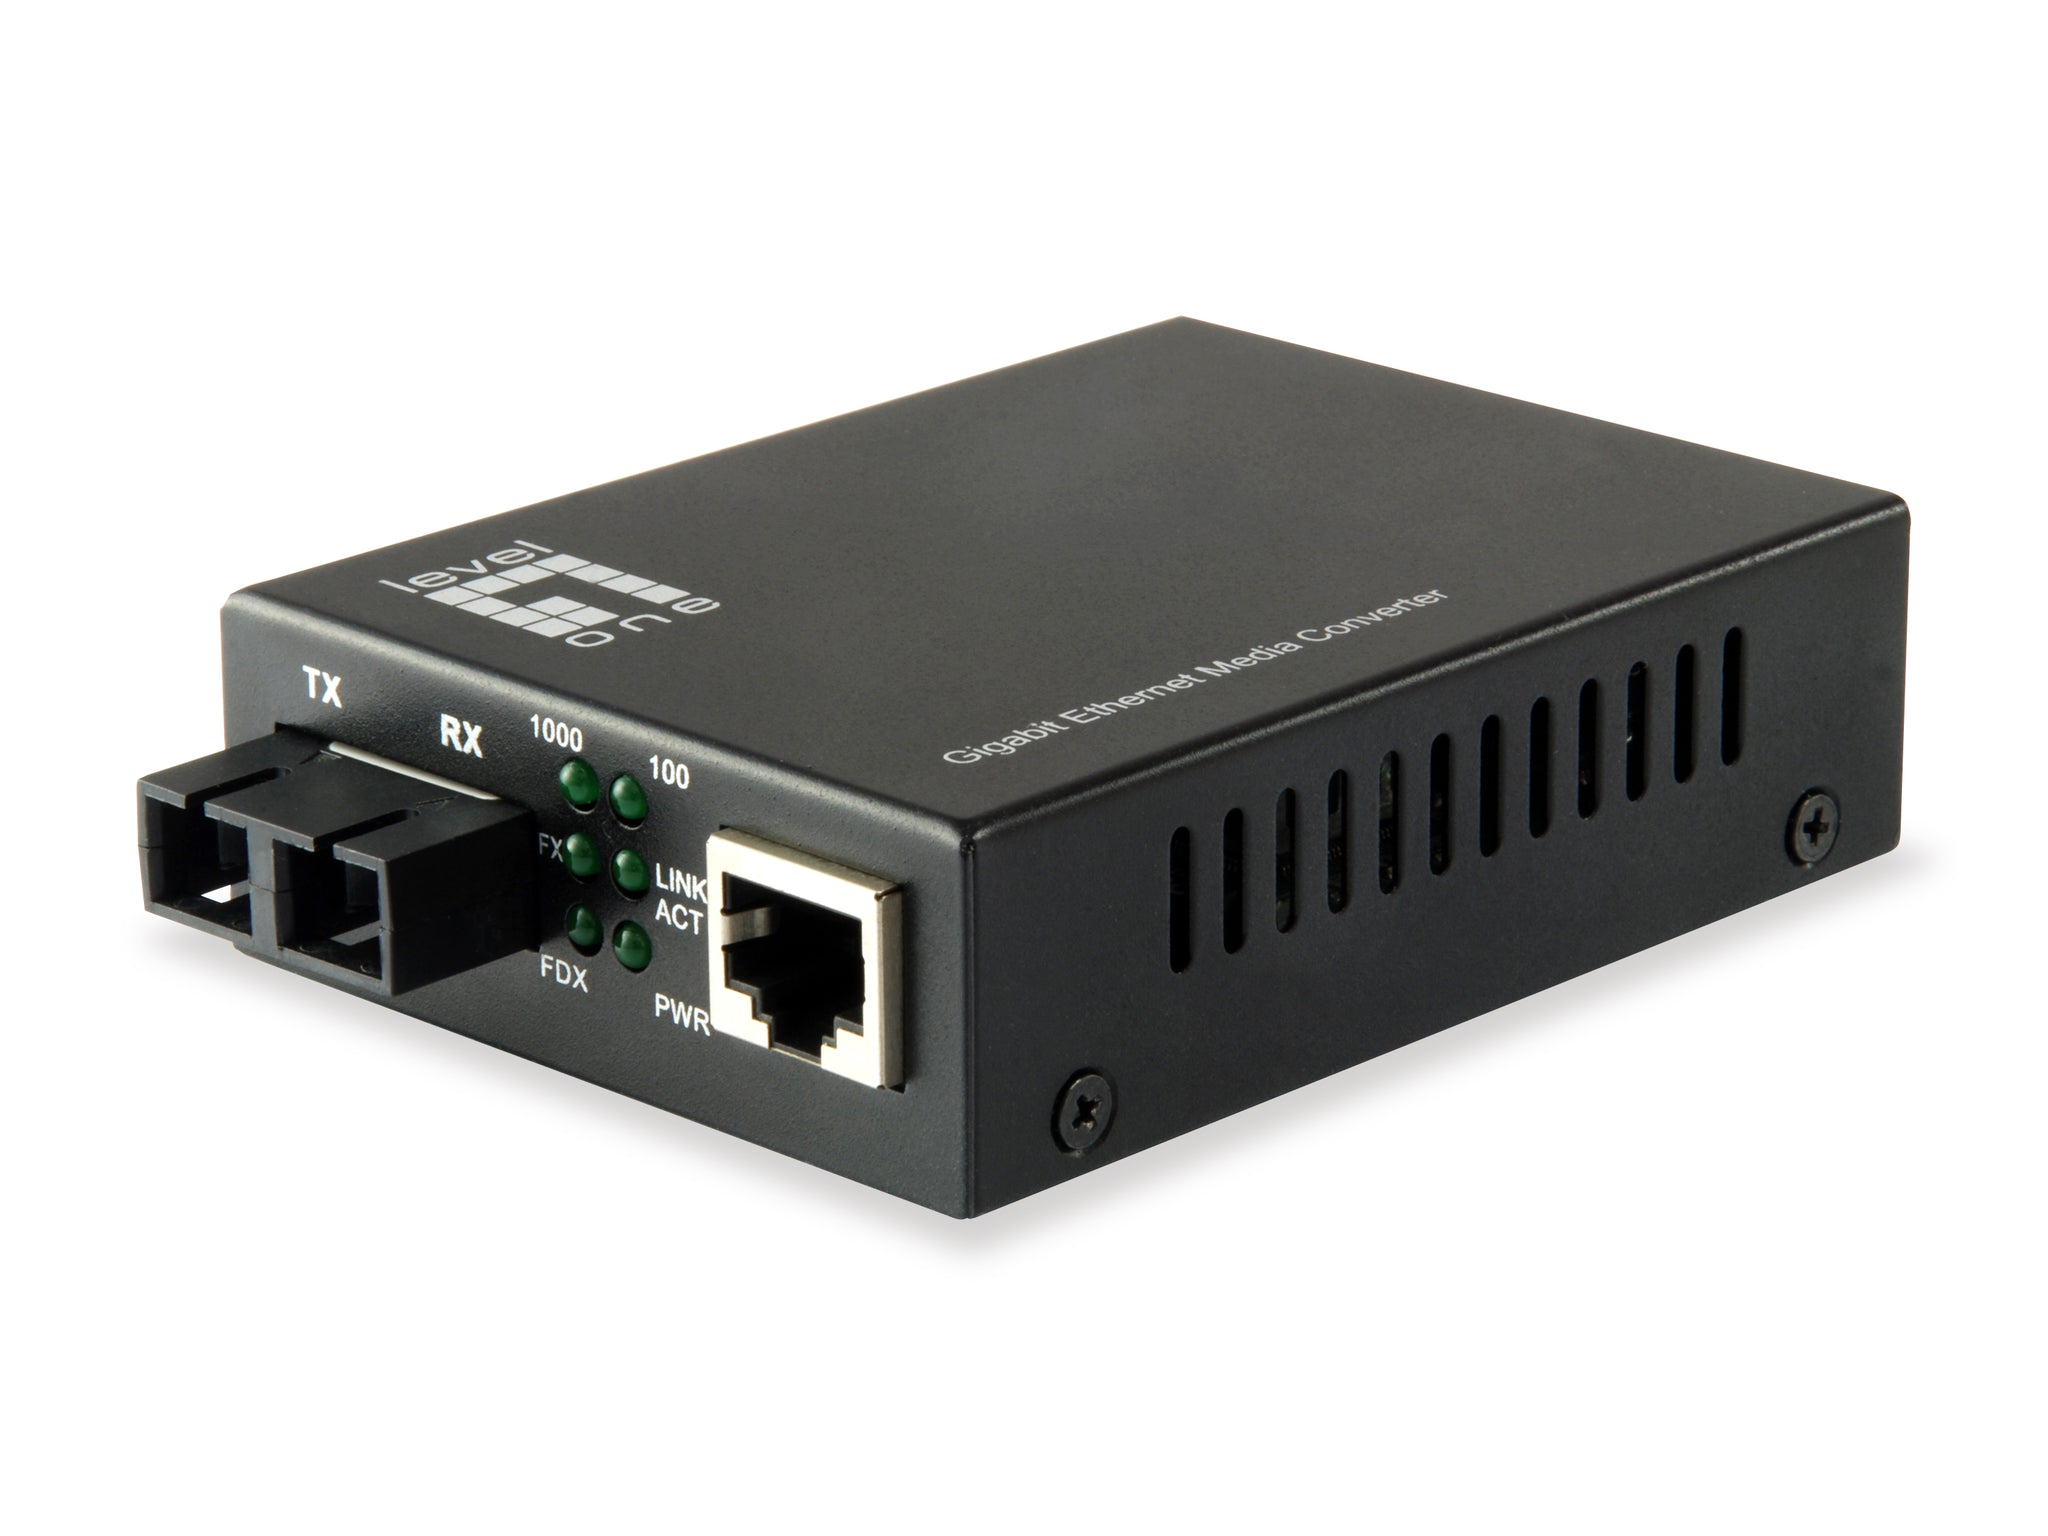 GVT-2002 RJ45 to SC Gigabit Media Converter, Single-Mode Fiber, 20km